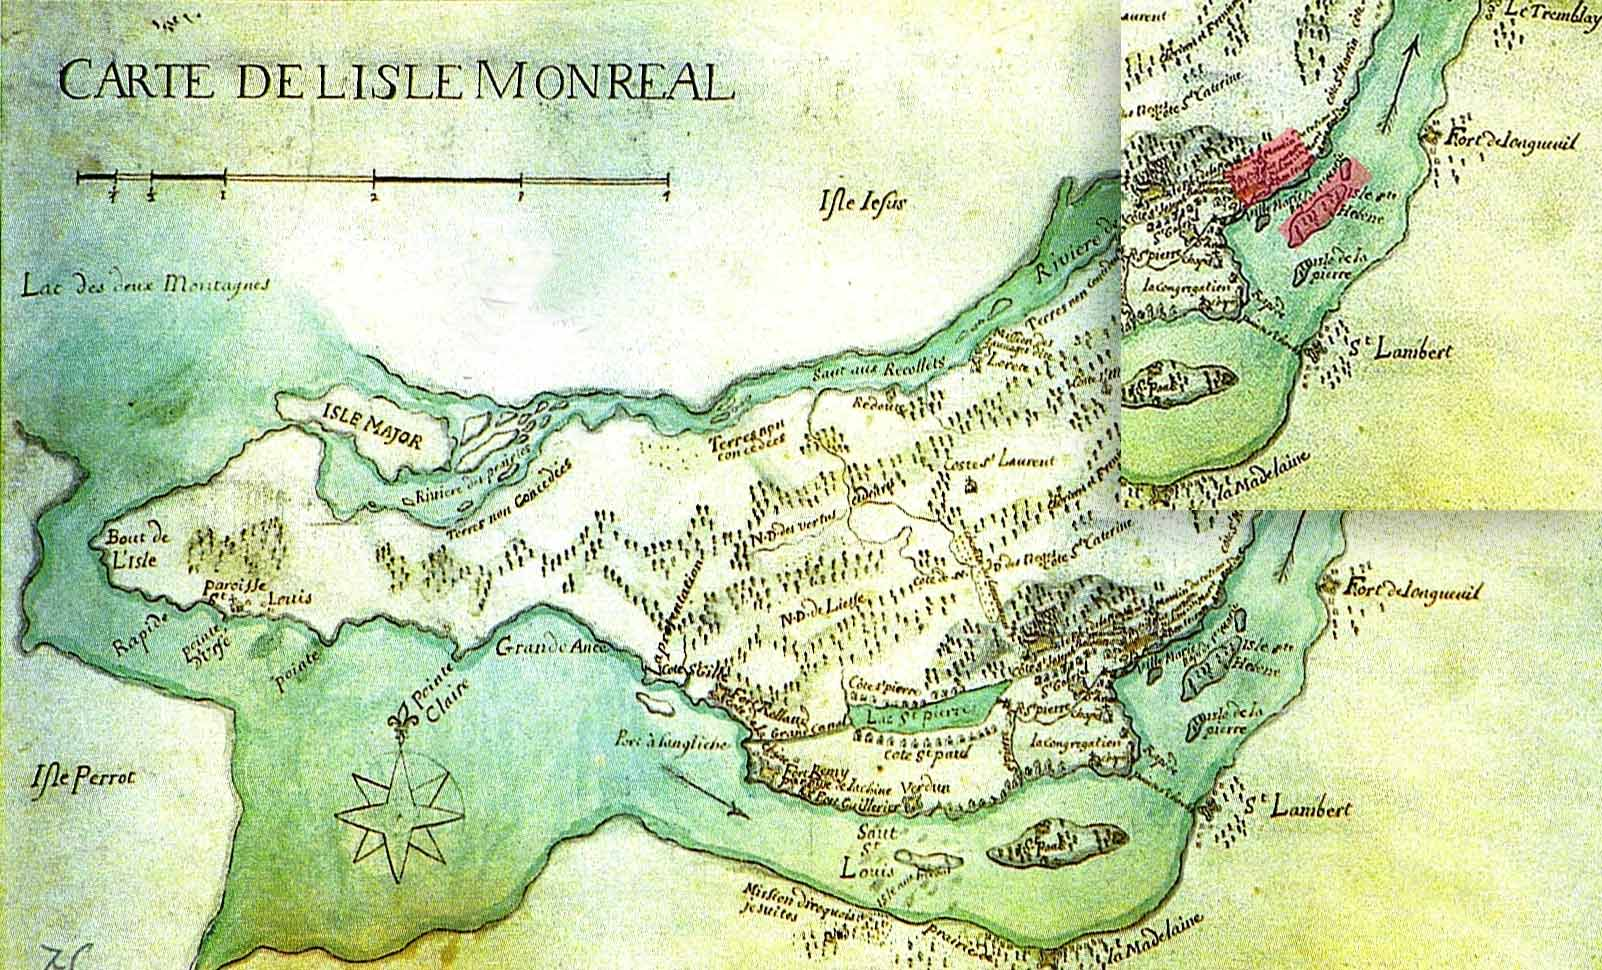 Map of Montreal in 1700